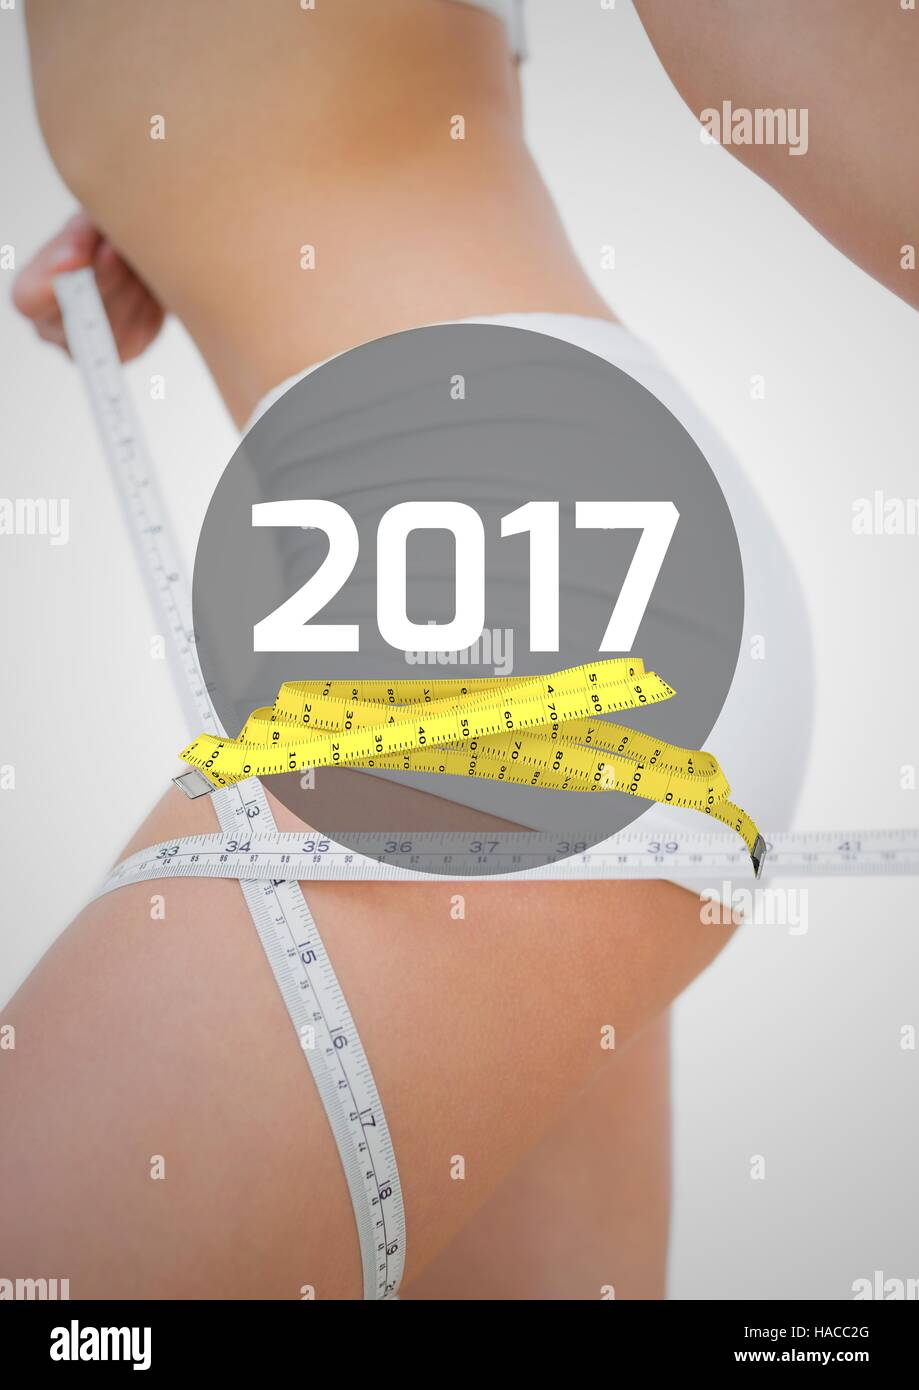 Woman measuring her thigh against 2017 - Stock Image